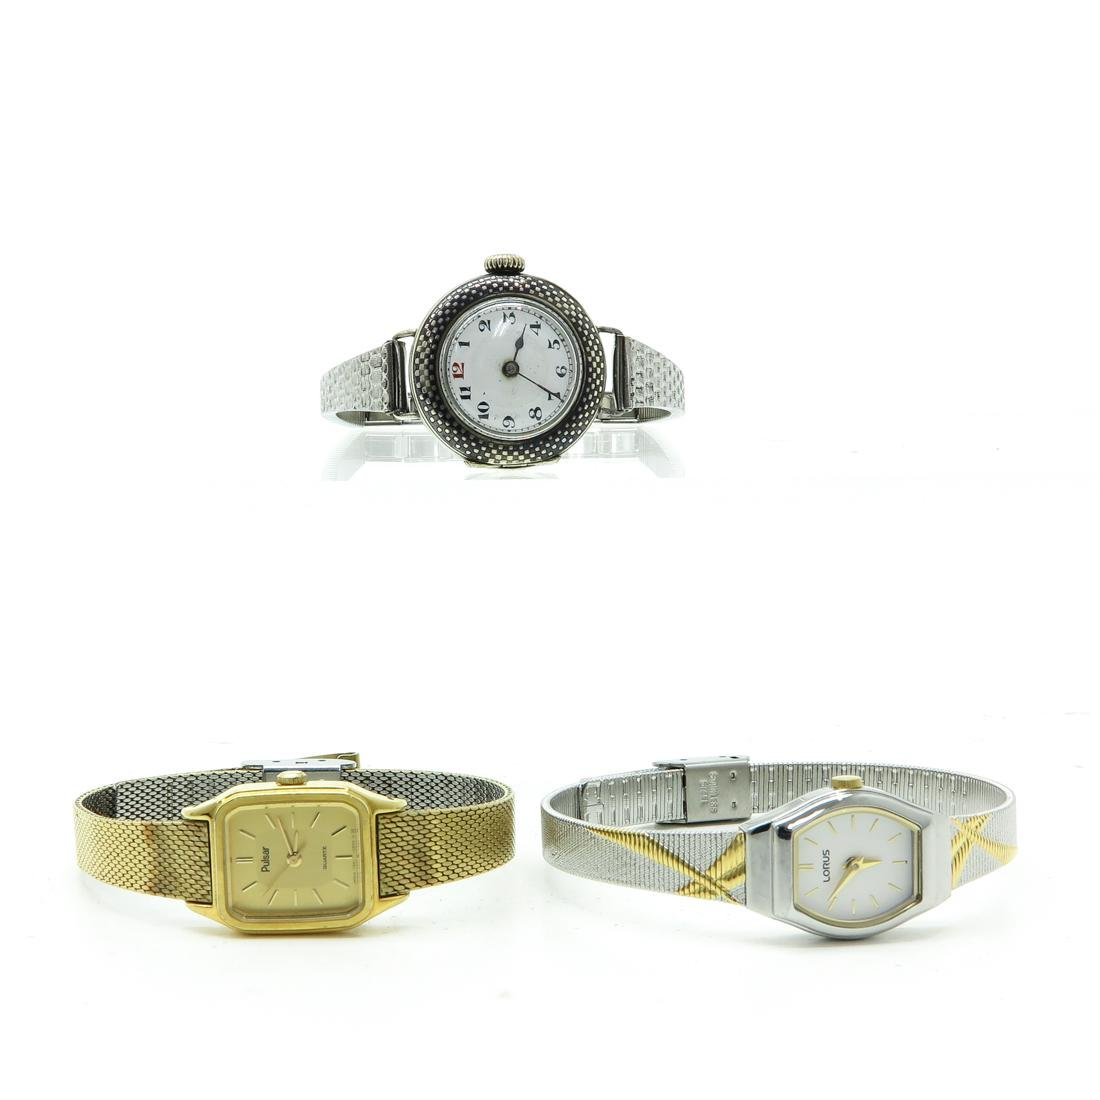 Lot of 3 Ladies Vintage Watches Including Rolex